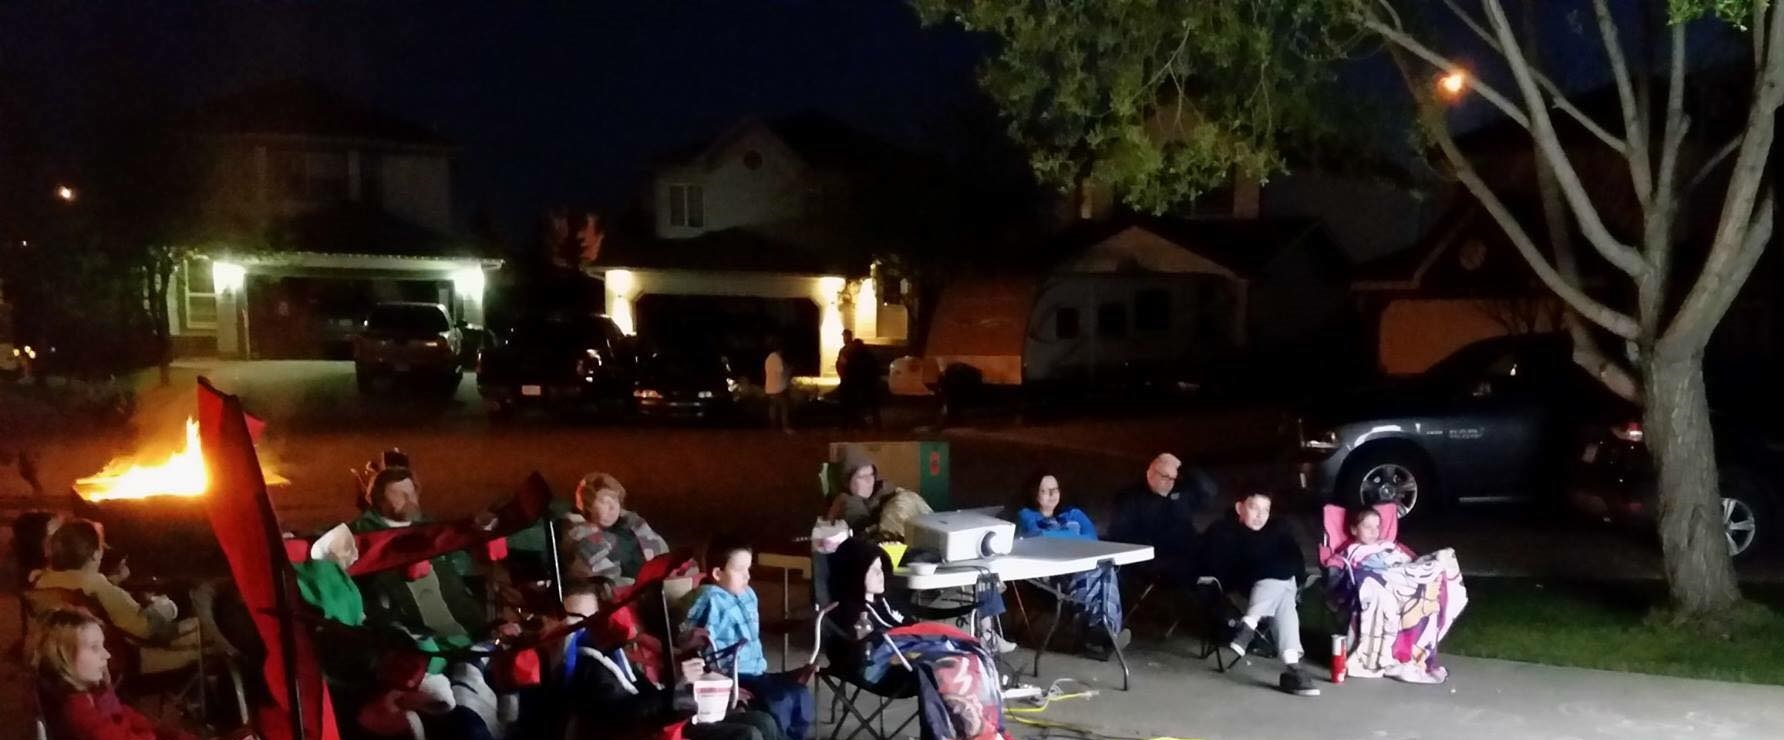 Doucette Place Movie Night 2 - May 2016